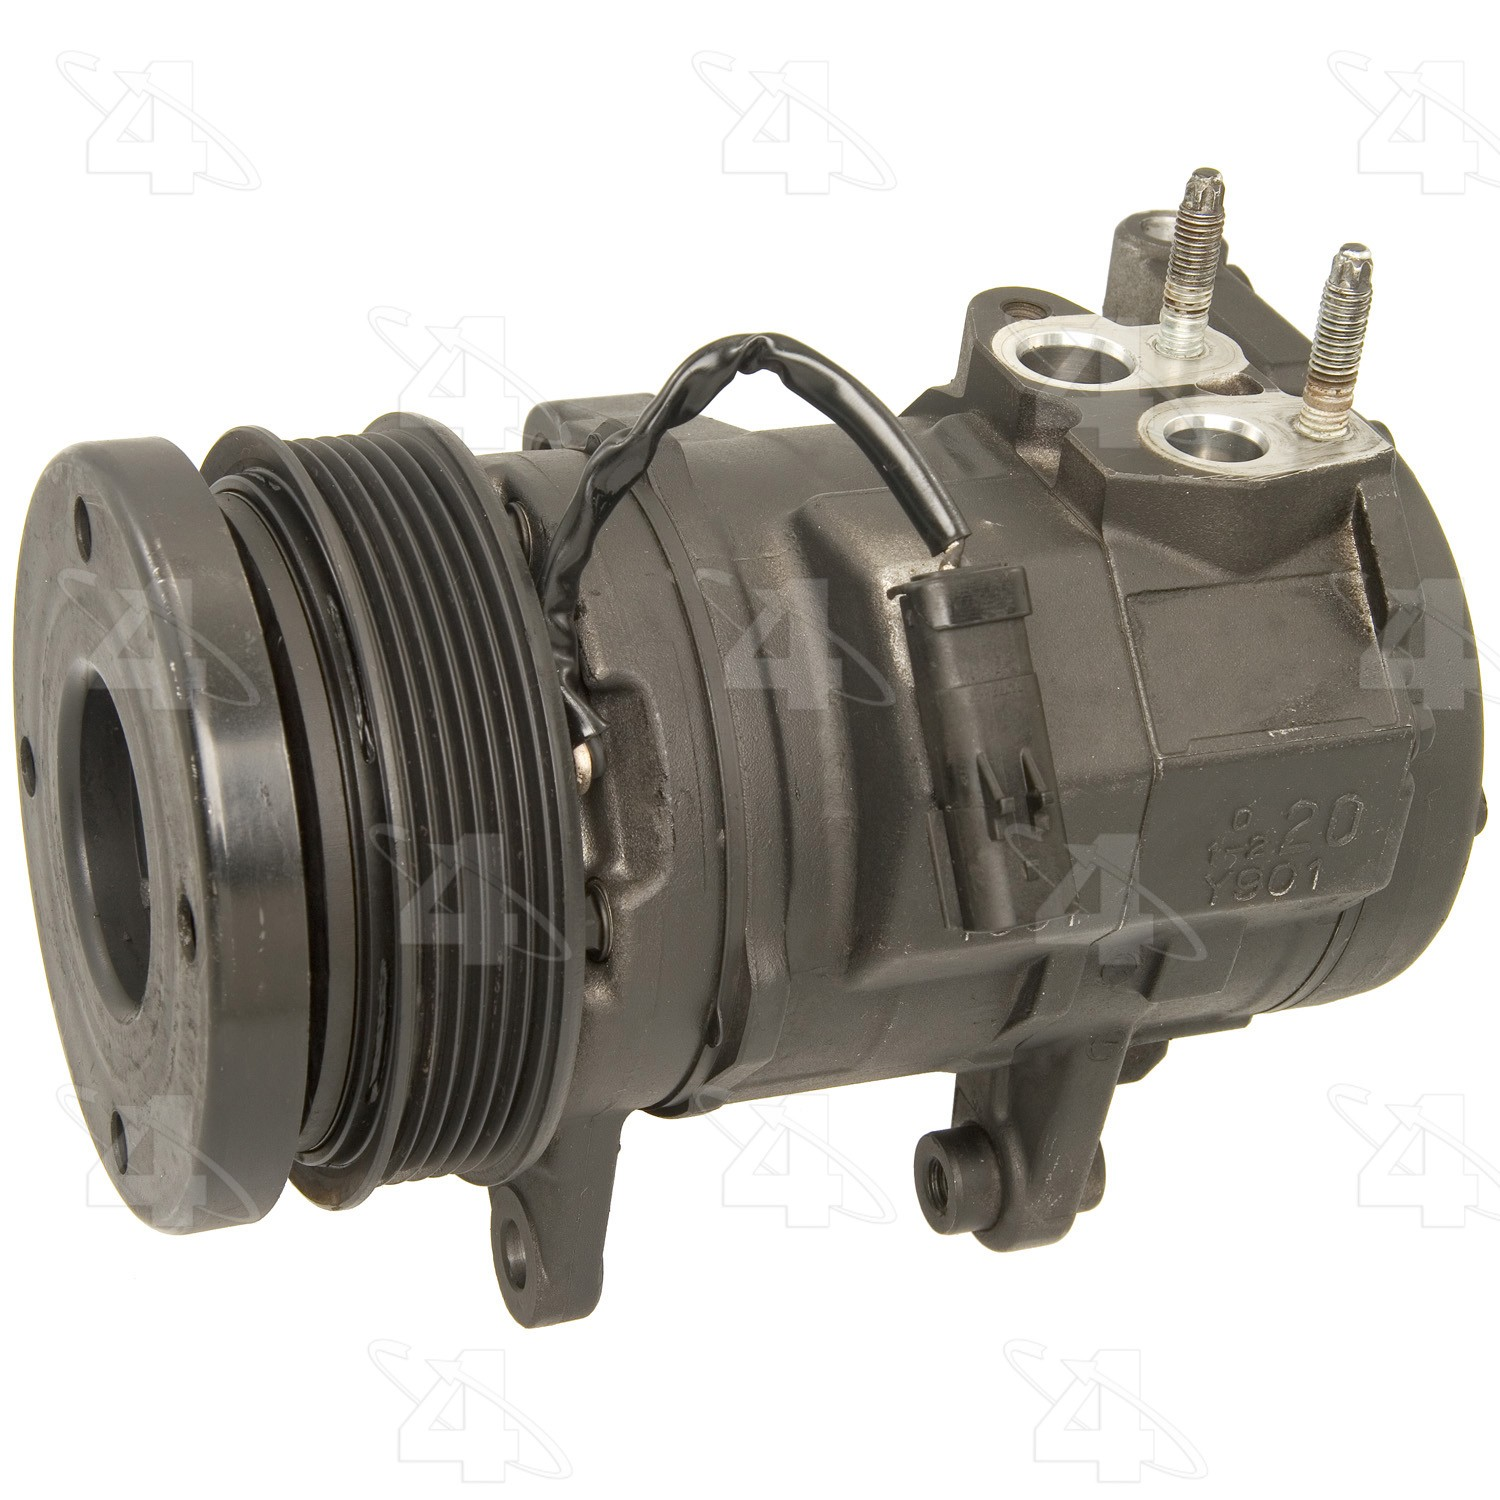 One Year Warranty A//C Compressor for Jeep Commander Grand Cherokee Reman 77361